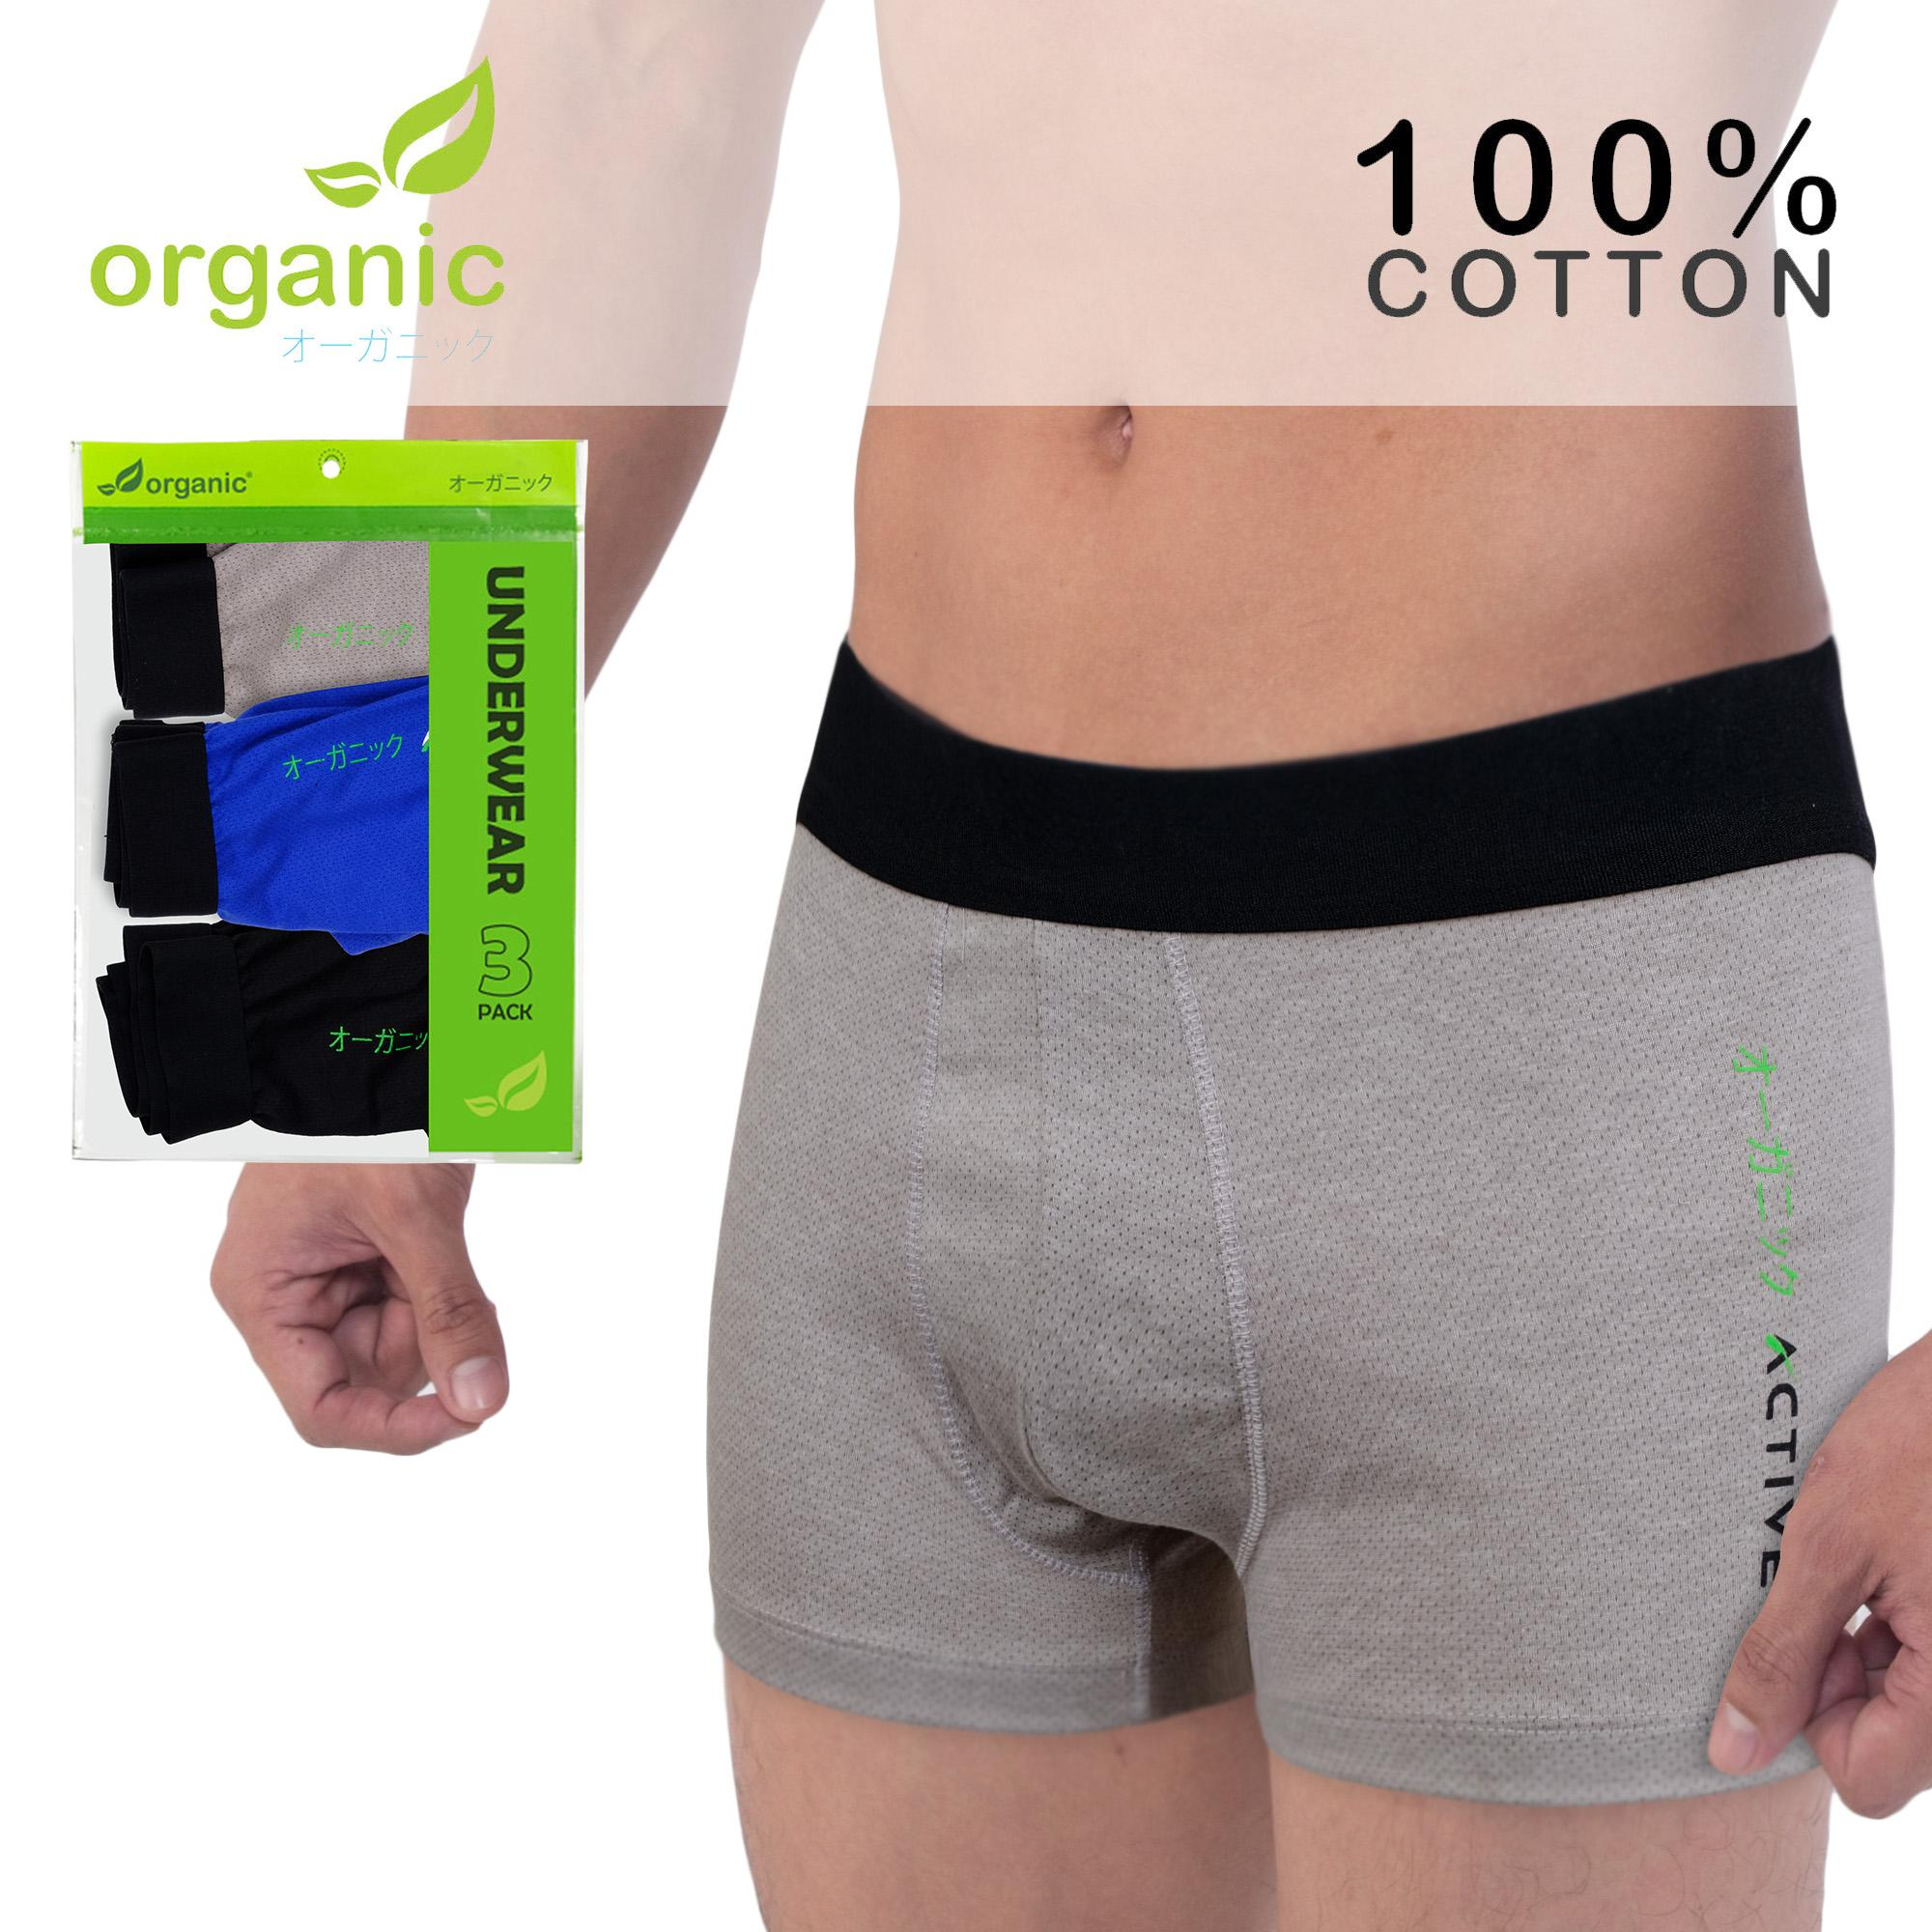 Organic Mens 100% Cotton Boxers Active (set Of 3) Underwear Brief Boxer Shorts Short For Men By Organic.